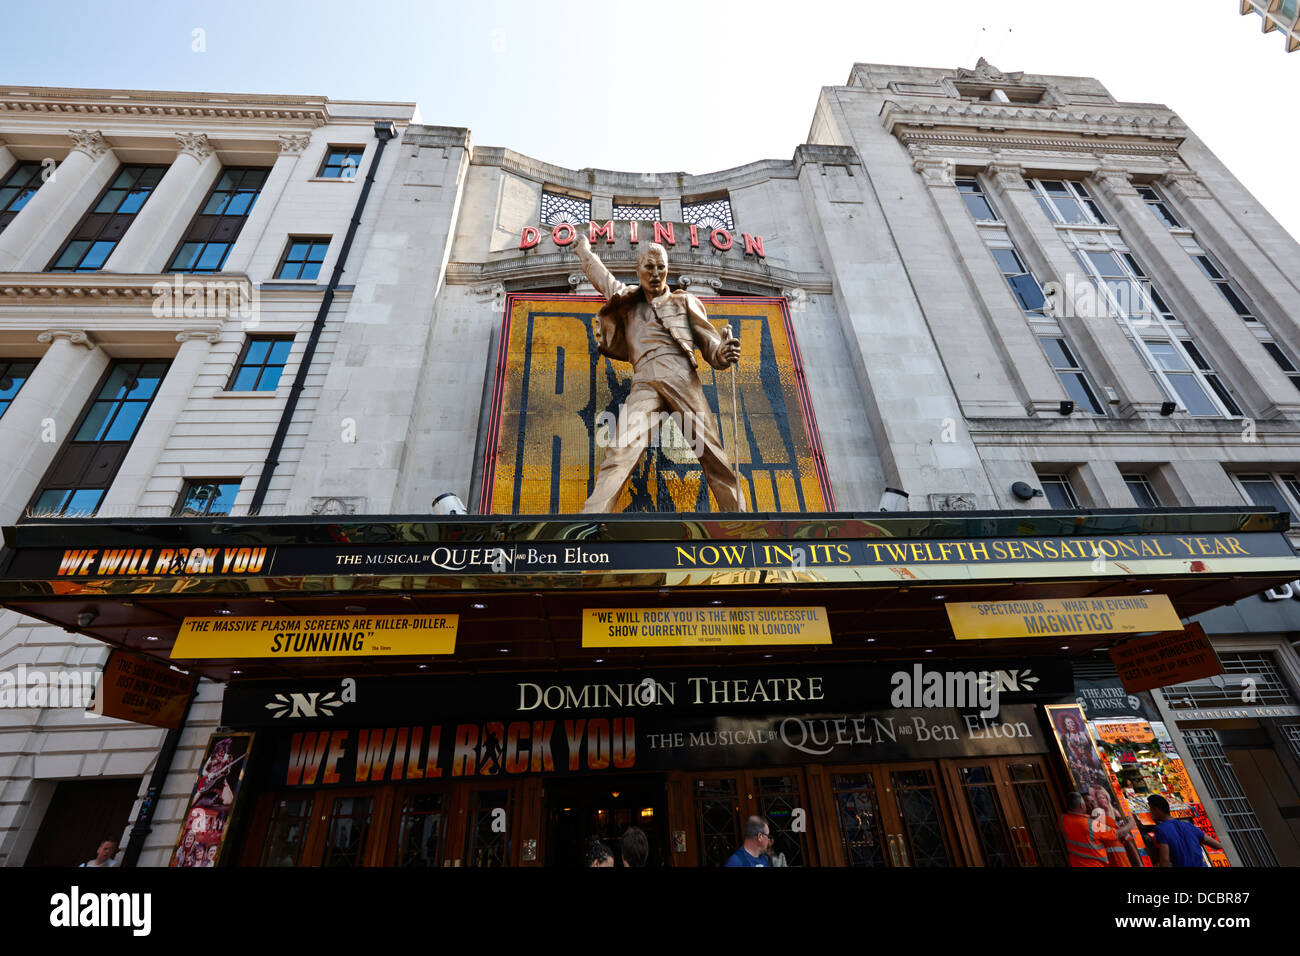 The Dominion Theatre With We Will Rock You Freddie Mercury Statue London England UK